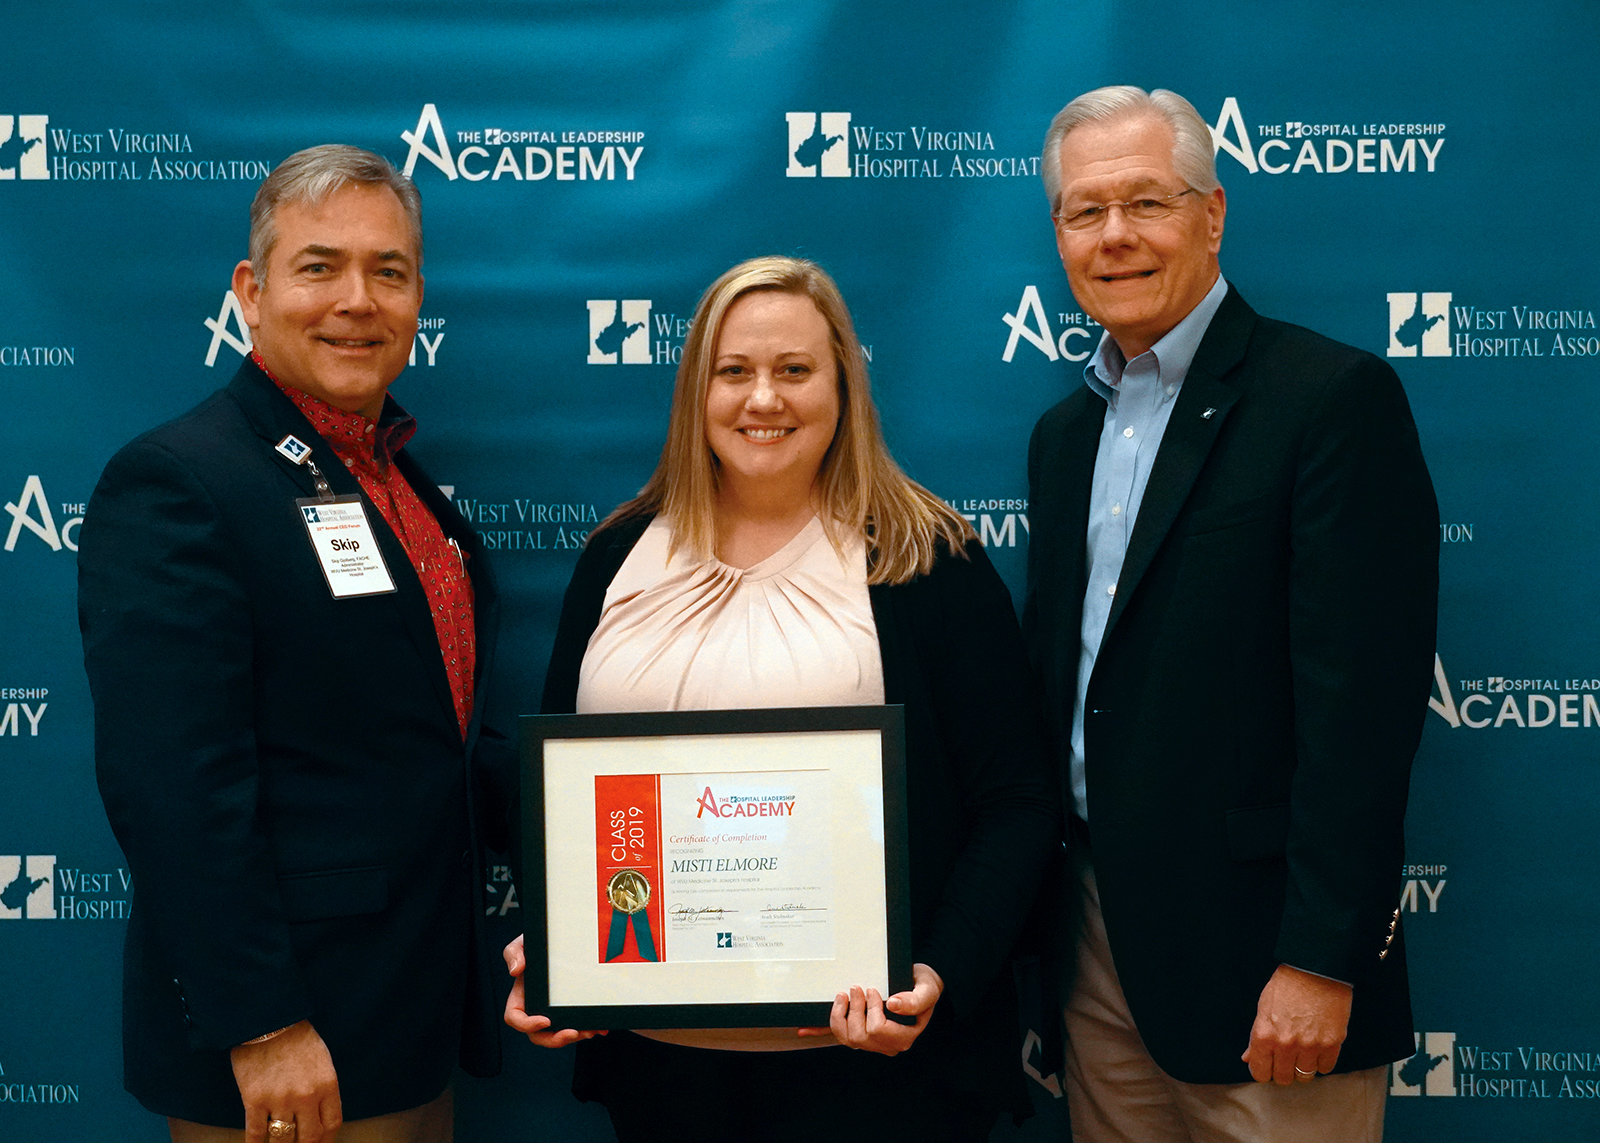 Skip Gjolberg, president of St. Joseph's Hospital (left), and Joseph Letnaunchyn, president and CEO of the West Virginia Hospital Association (right), present Misti Elmore with her certification of completion.